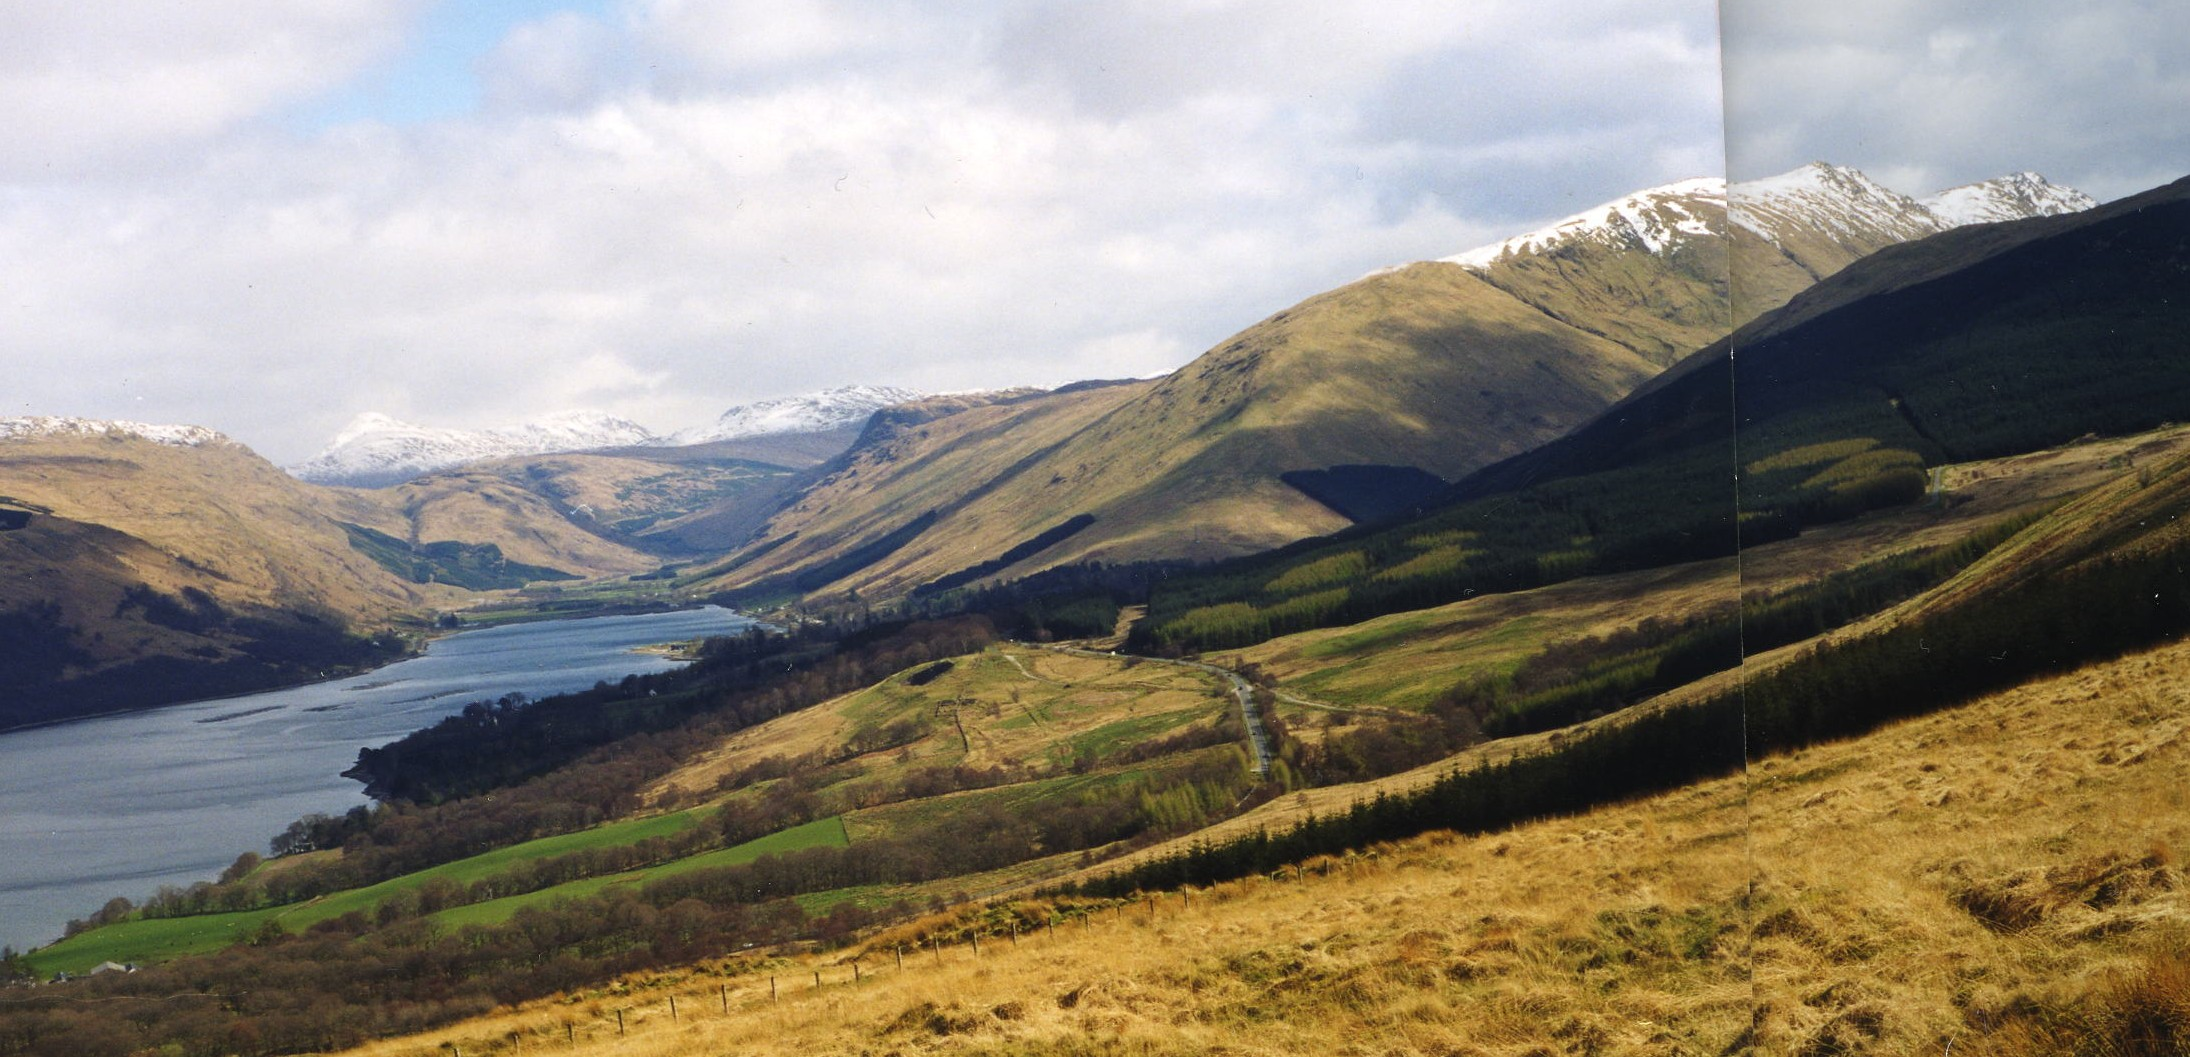 View from Laglingarton